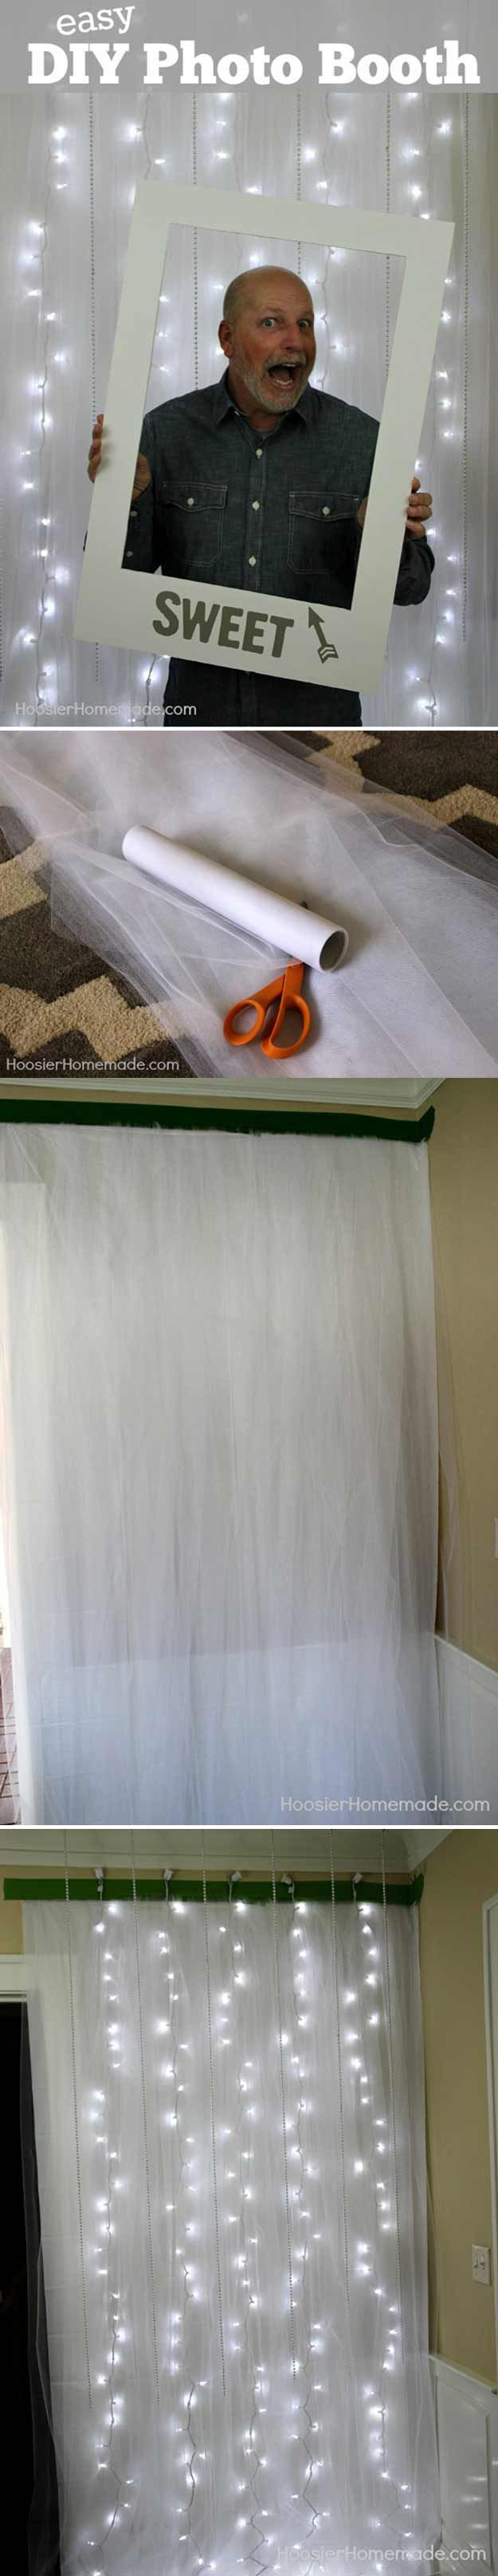 Easy Photo Booth Tutorial Idea by DIY Ready at http://diyready.com/20-diy-photo-booth-ideas/